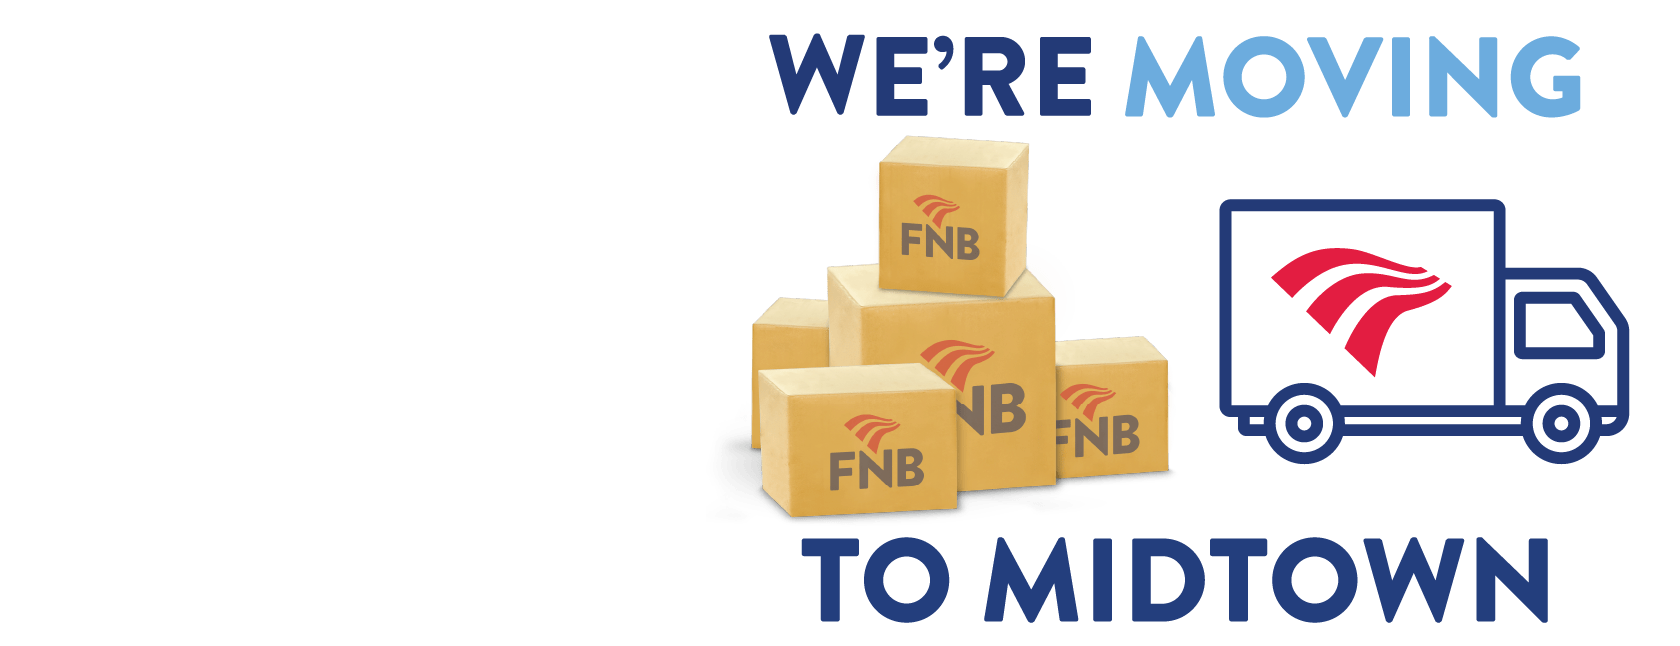 fnb-moving-to-midtown